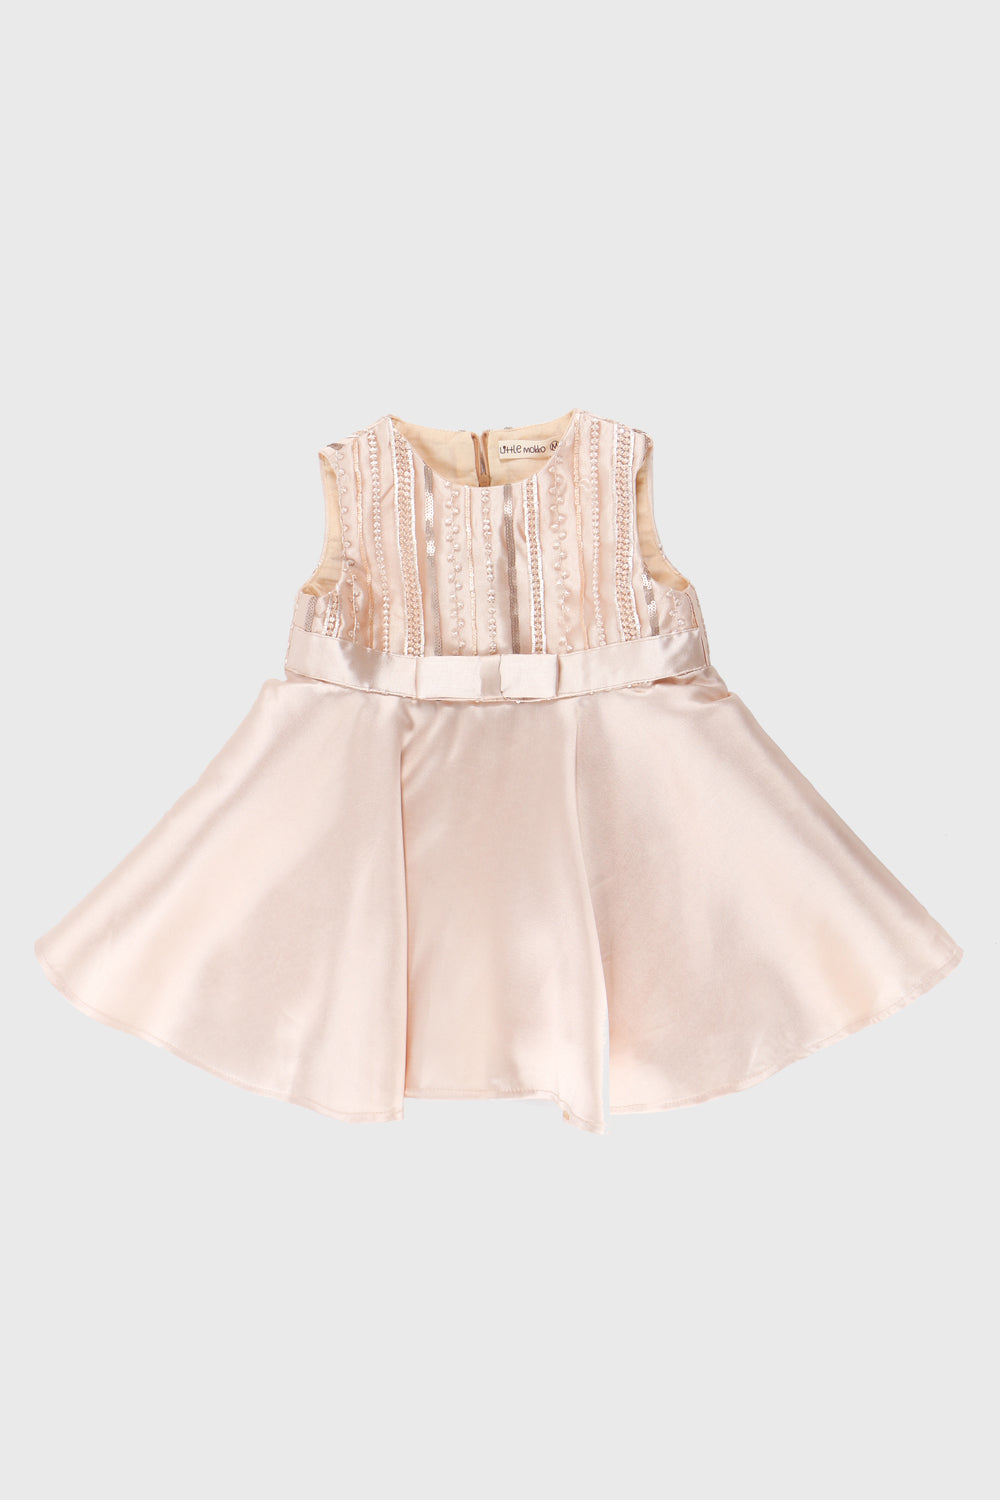 Little Mokko Holly Dress in Gold